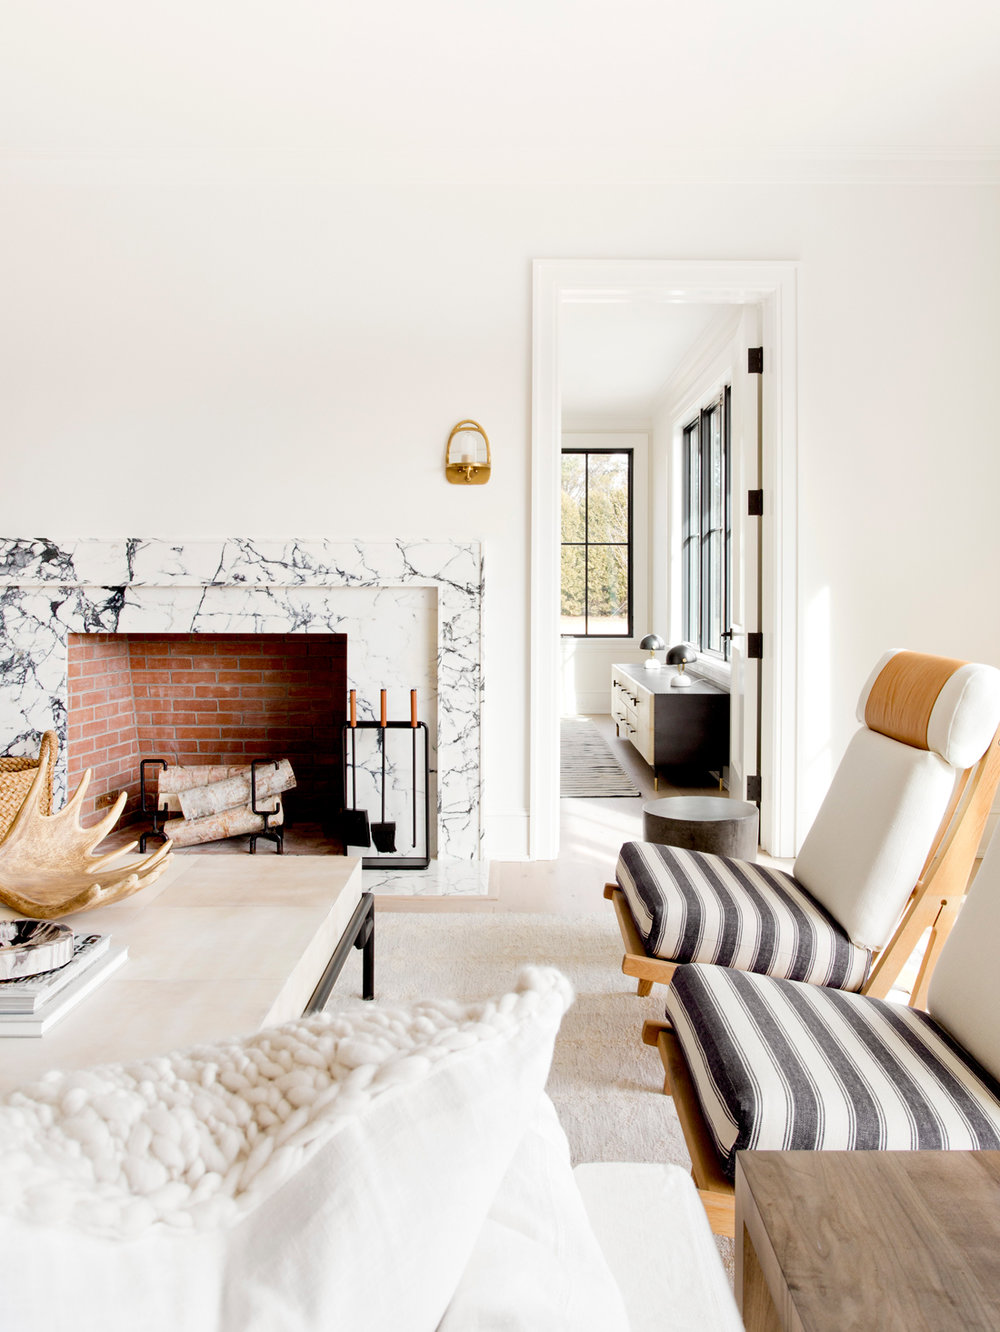 Beach Pretty House Tours:  05-hedges-lane-sagaponack-tamara-magel-dpages.jpg